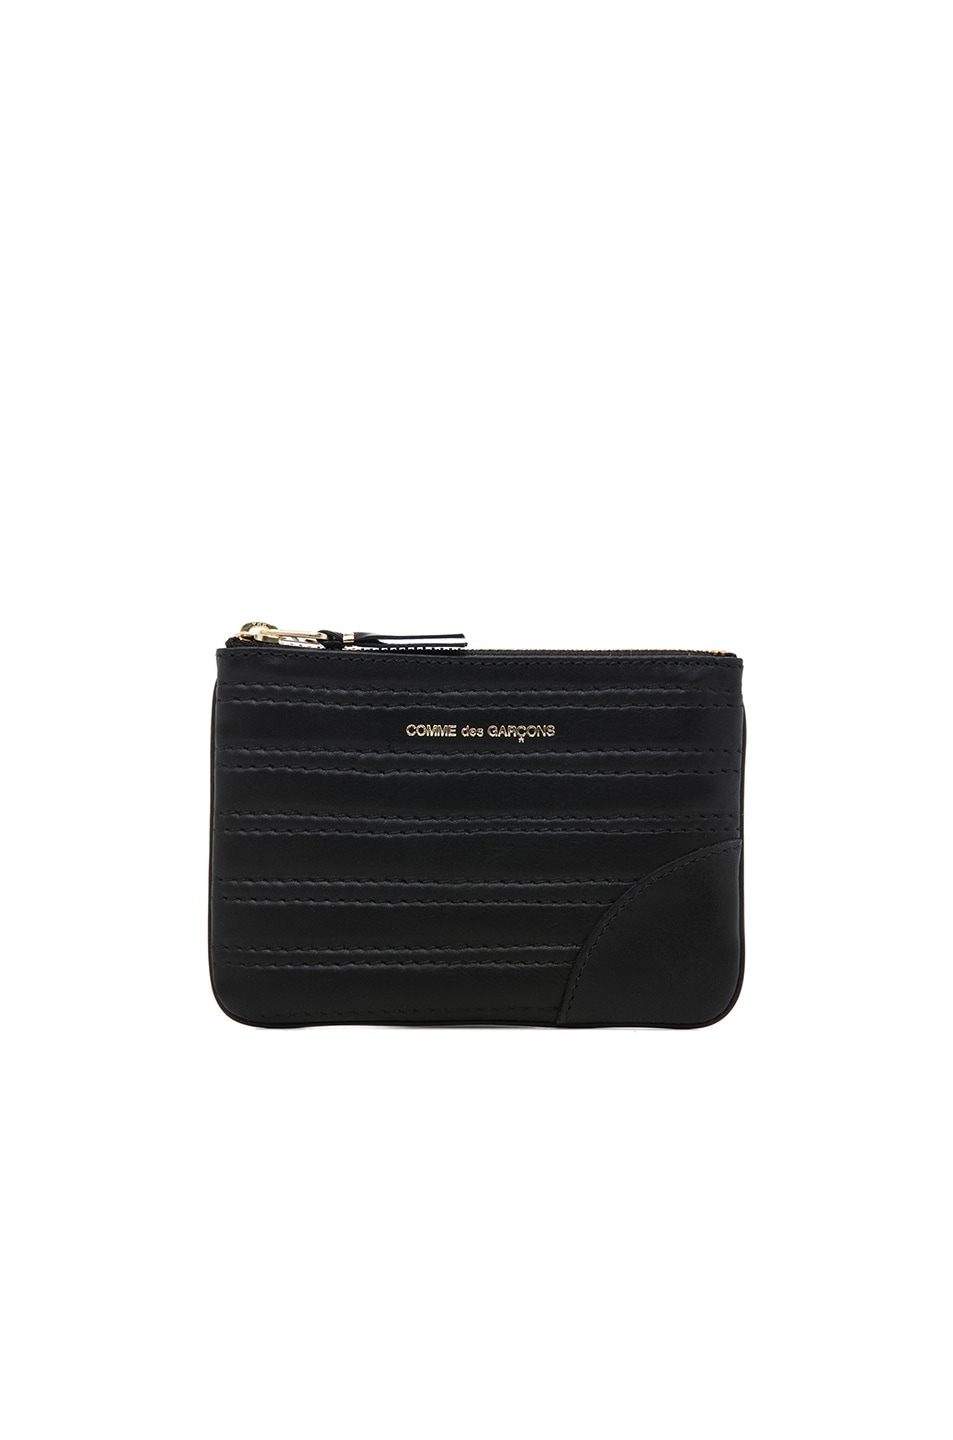 COMME DES GARCONS EMBOSSED STITCH SMALL POUCH IN BLACK